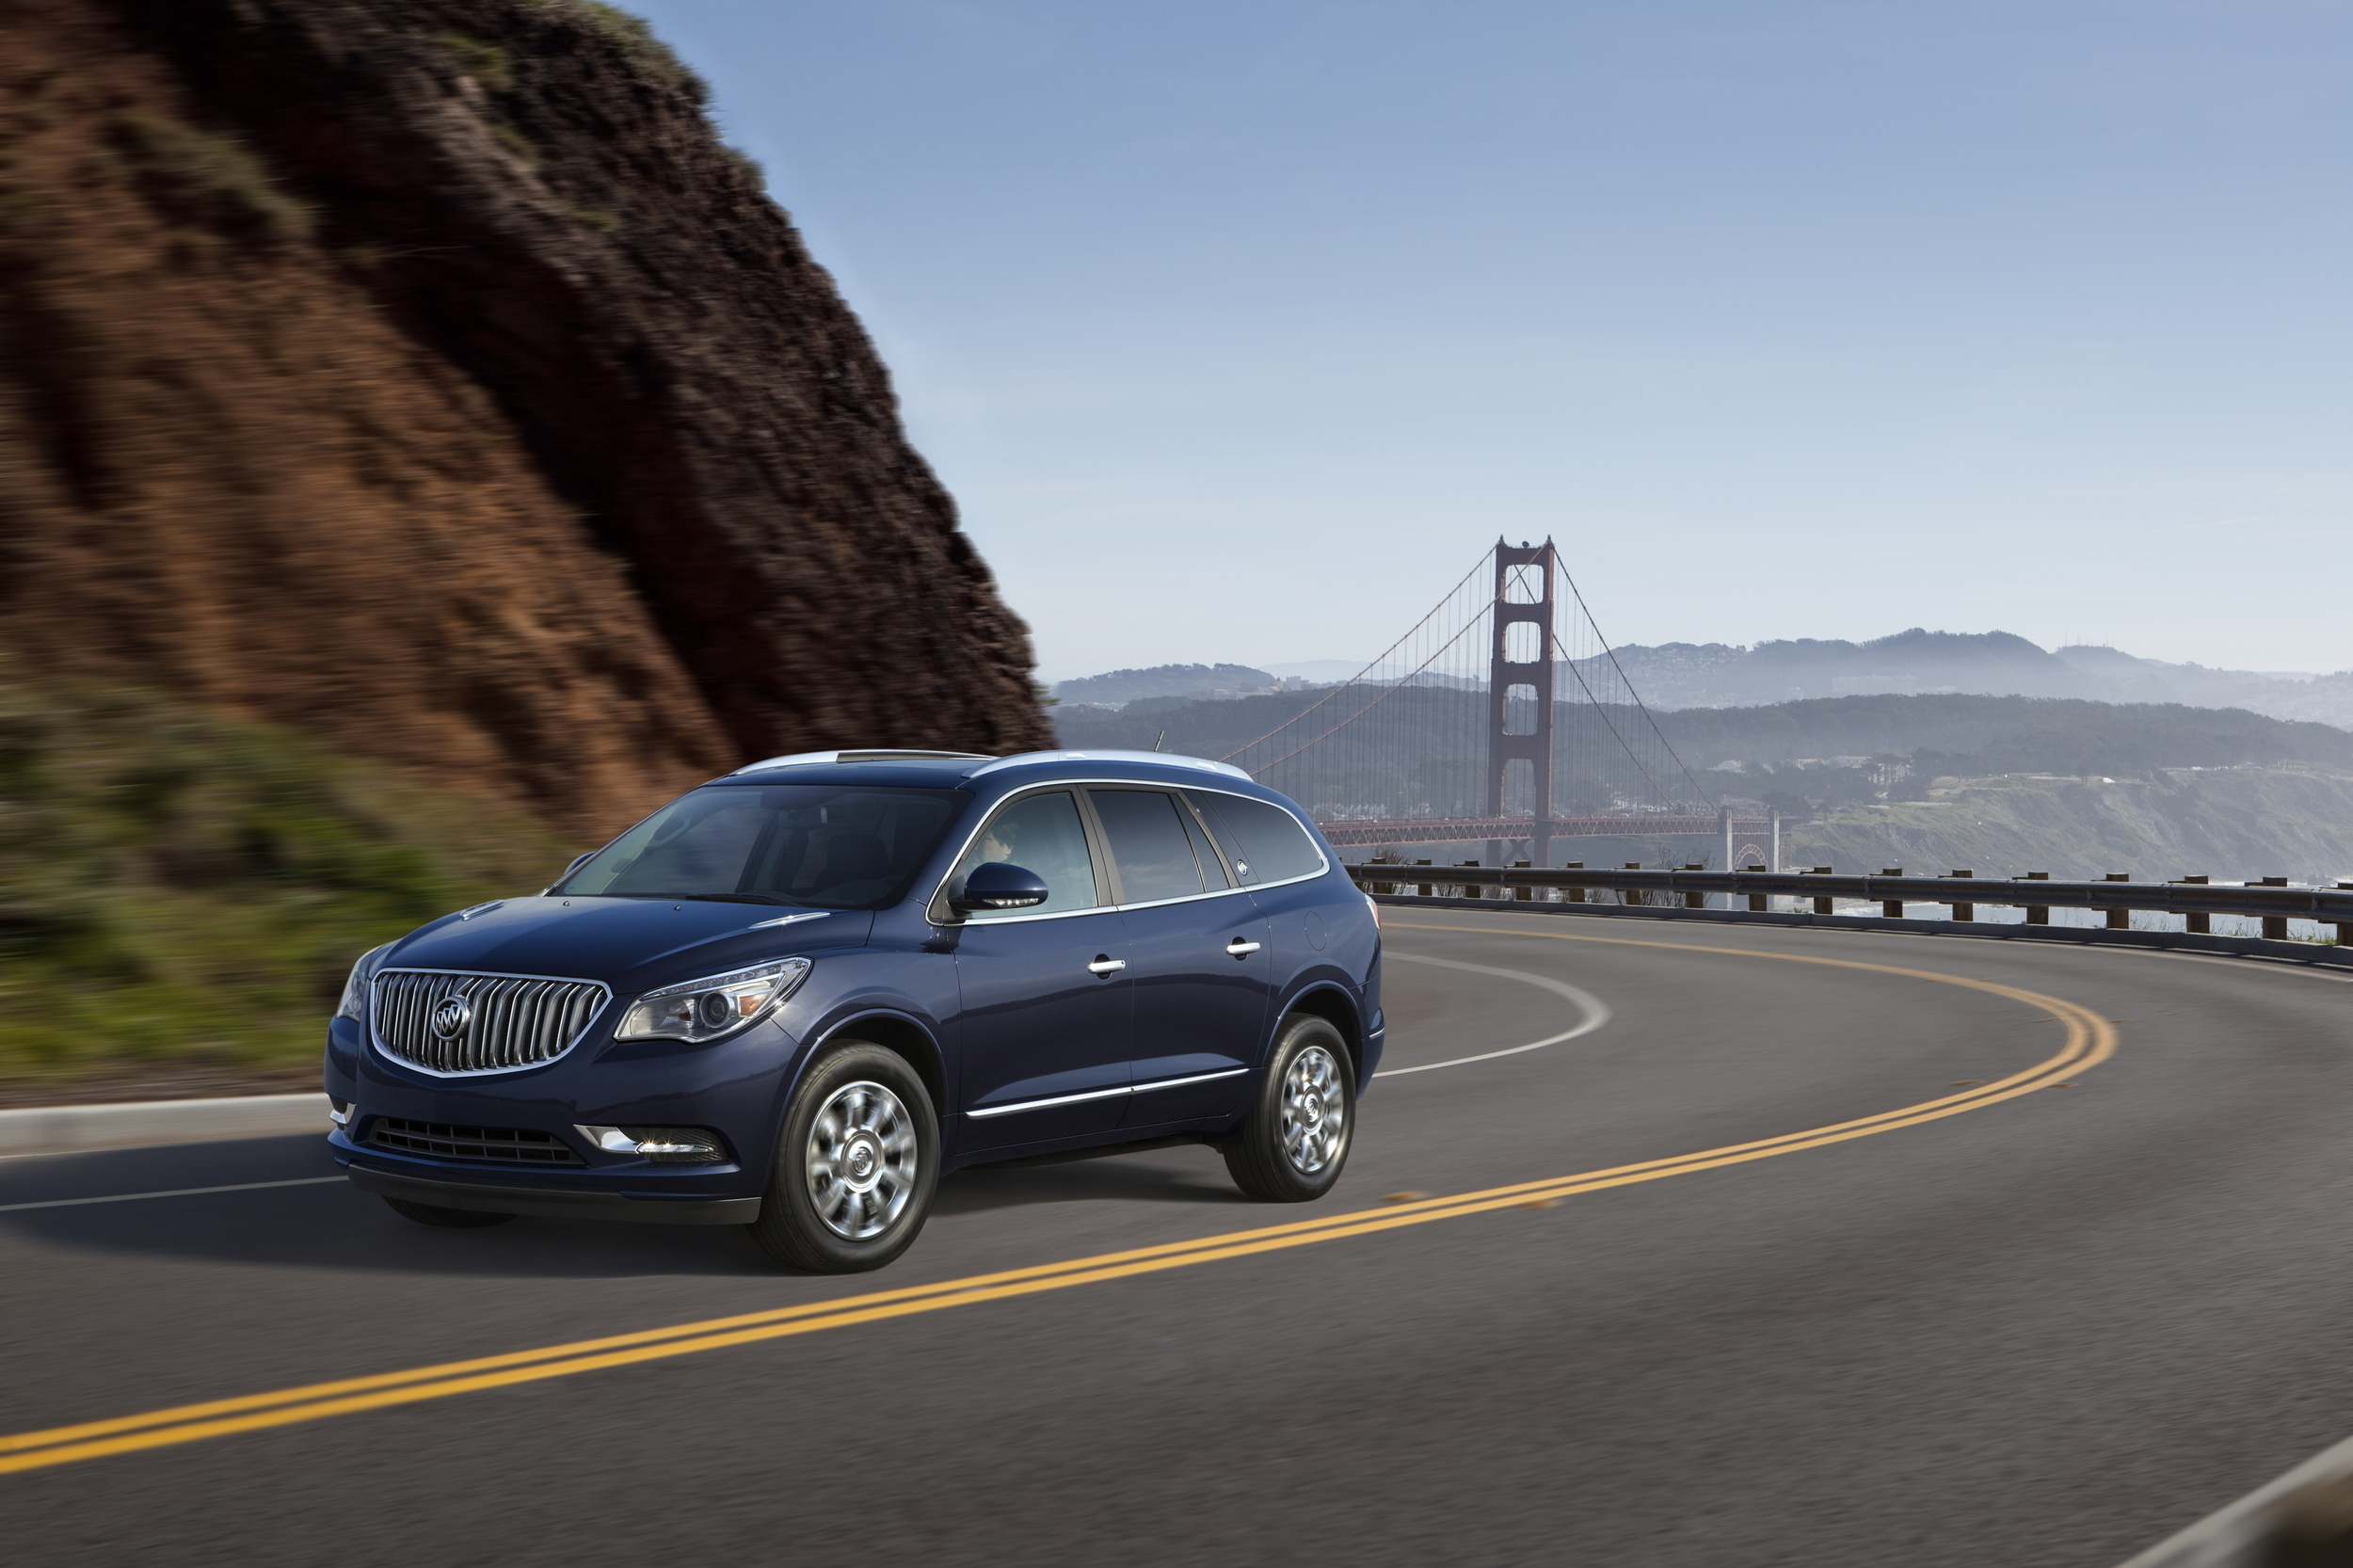 sale release near denali date for enclave gmc used number price buick cars lease